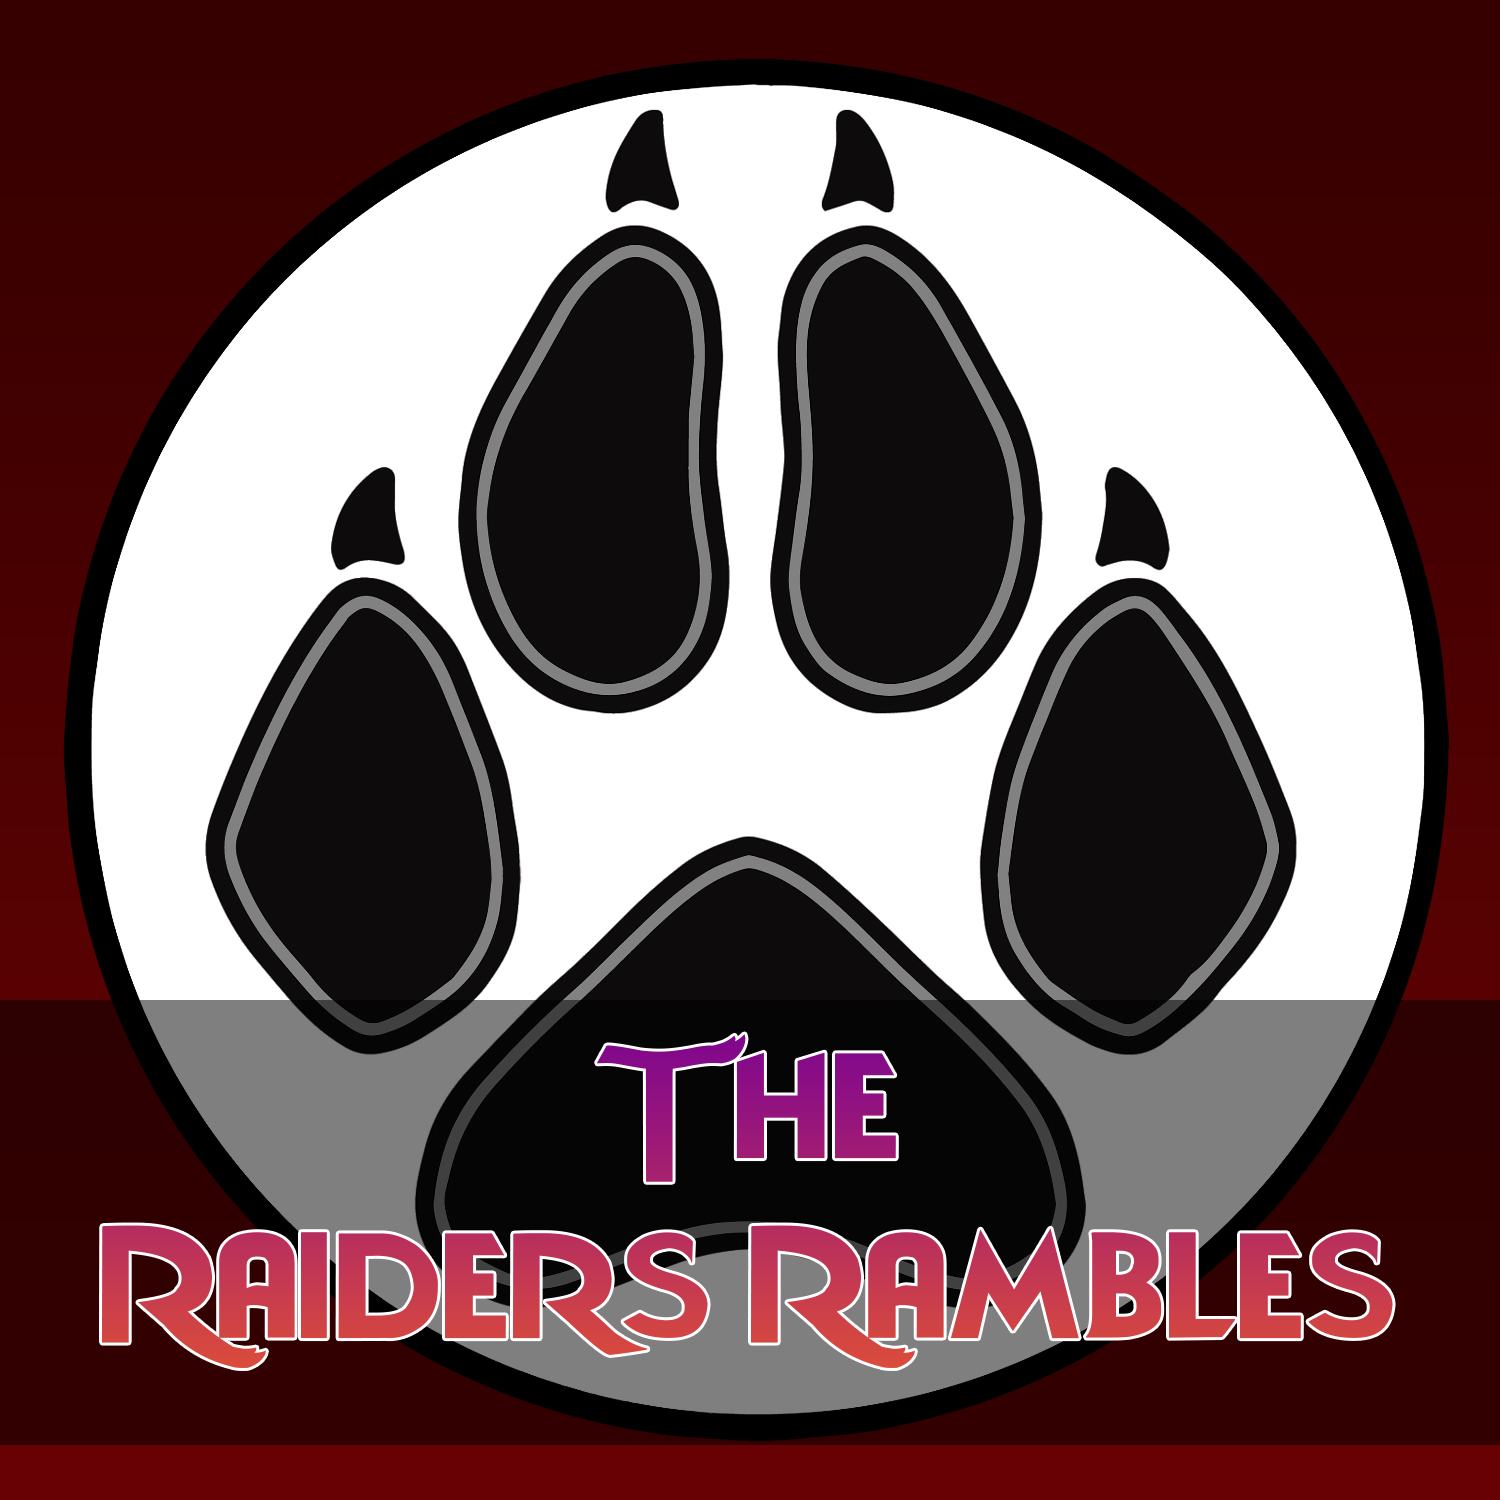 The Raiders Rambles